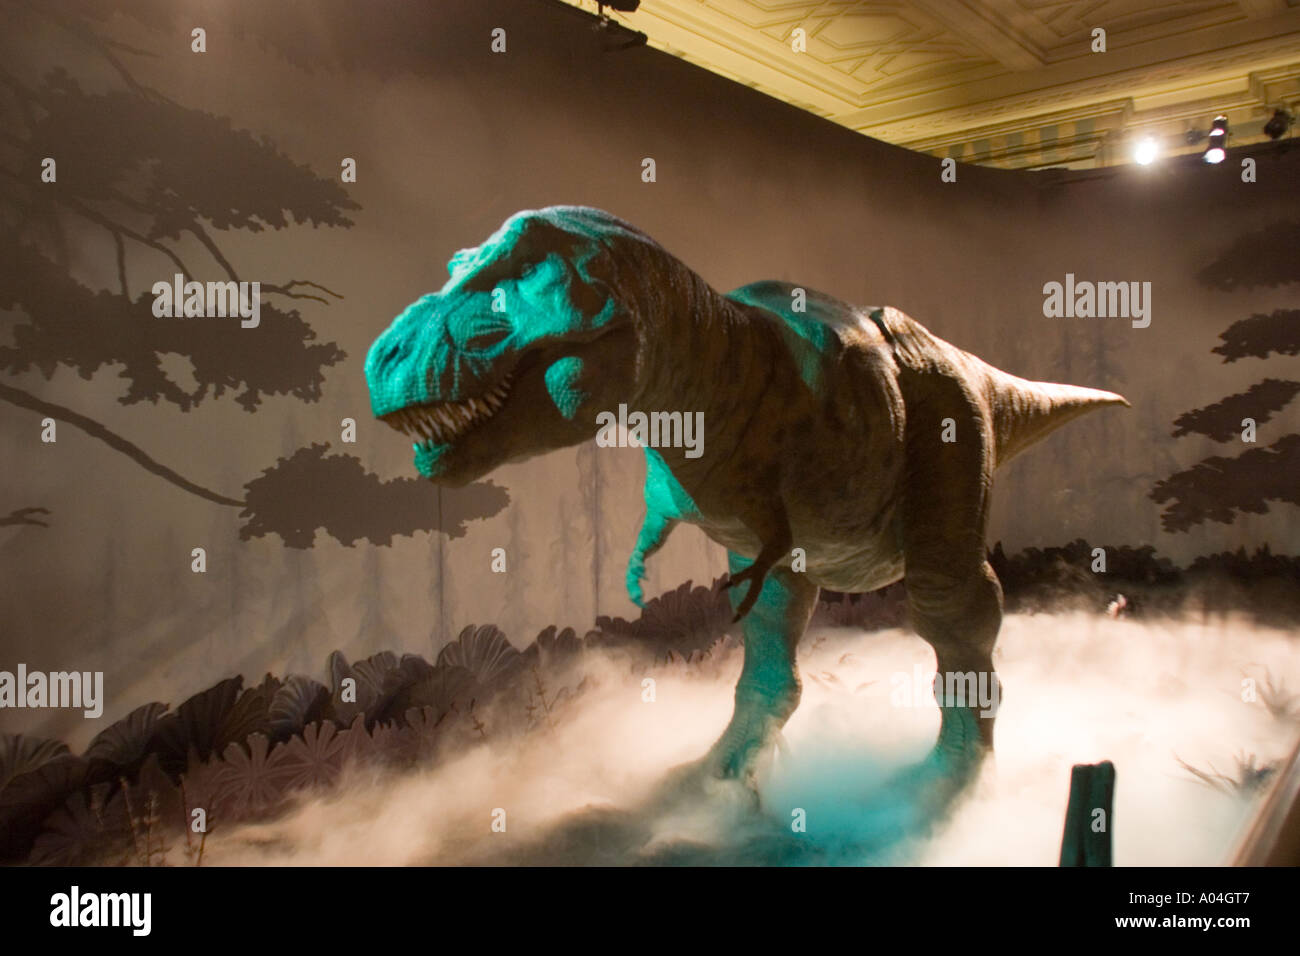 Tyrannosaurus exhibit in the Natural History Museum, South Kensington London UK - Stock Image